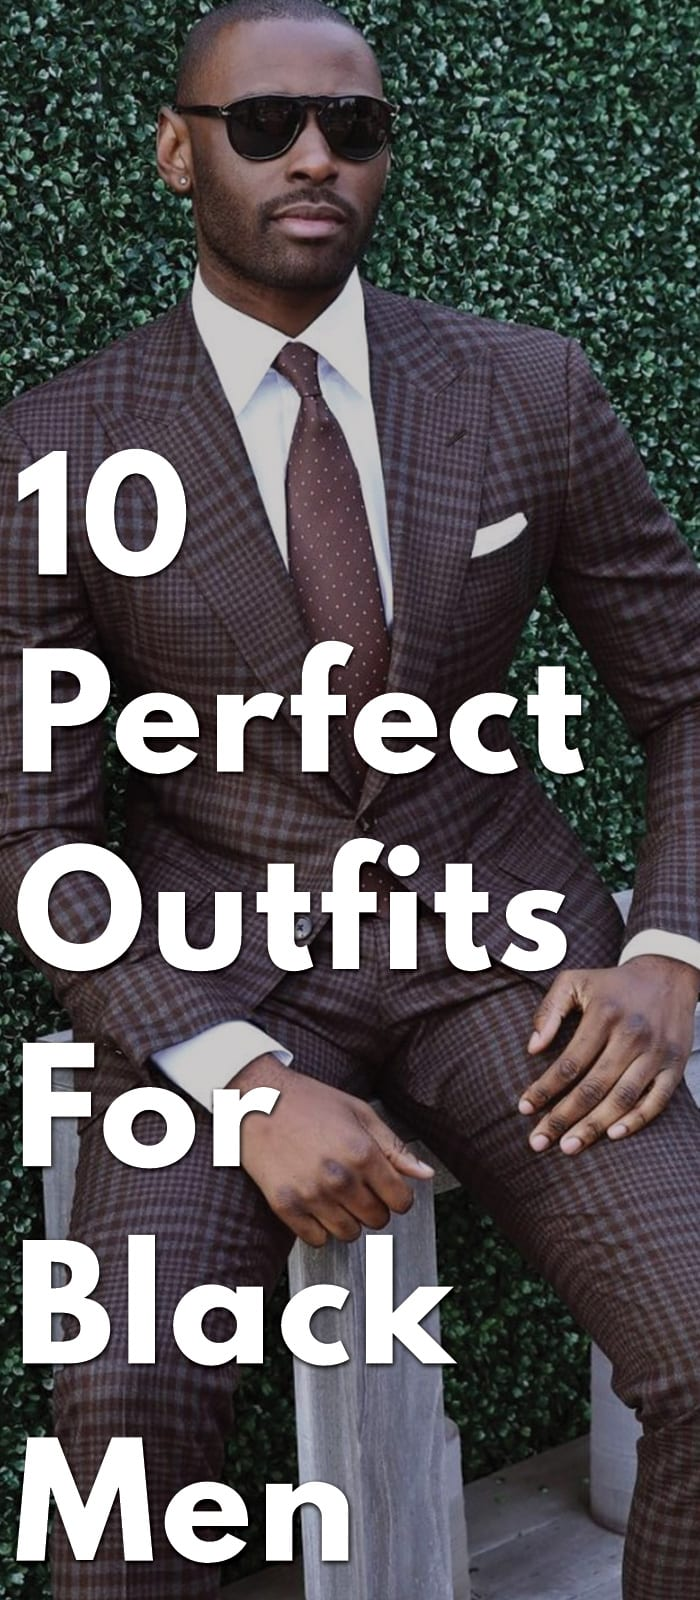 10-Perfect-Outfits-for-Black-Men